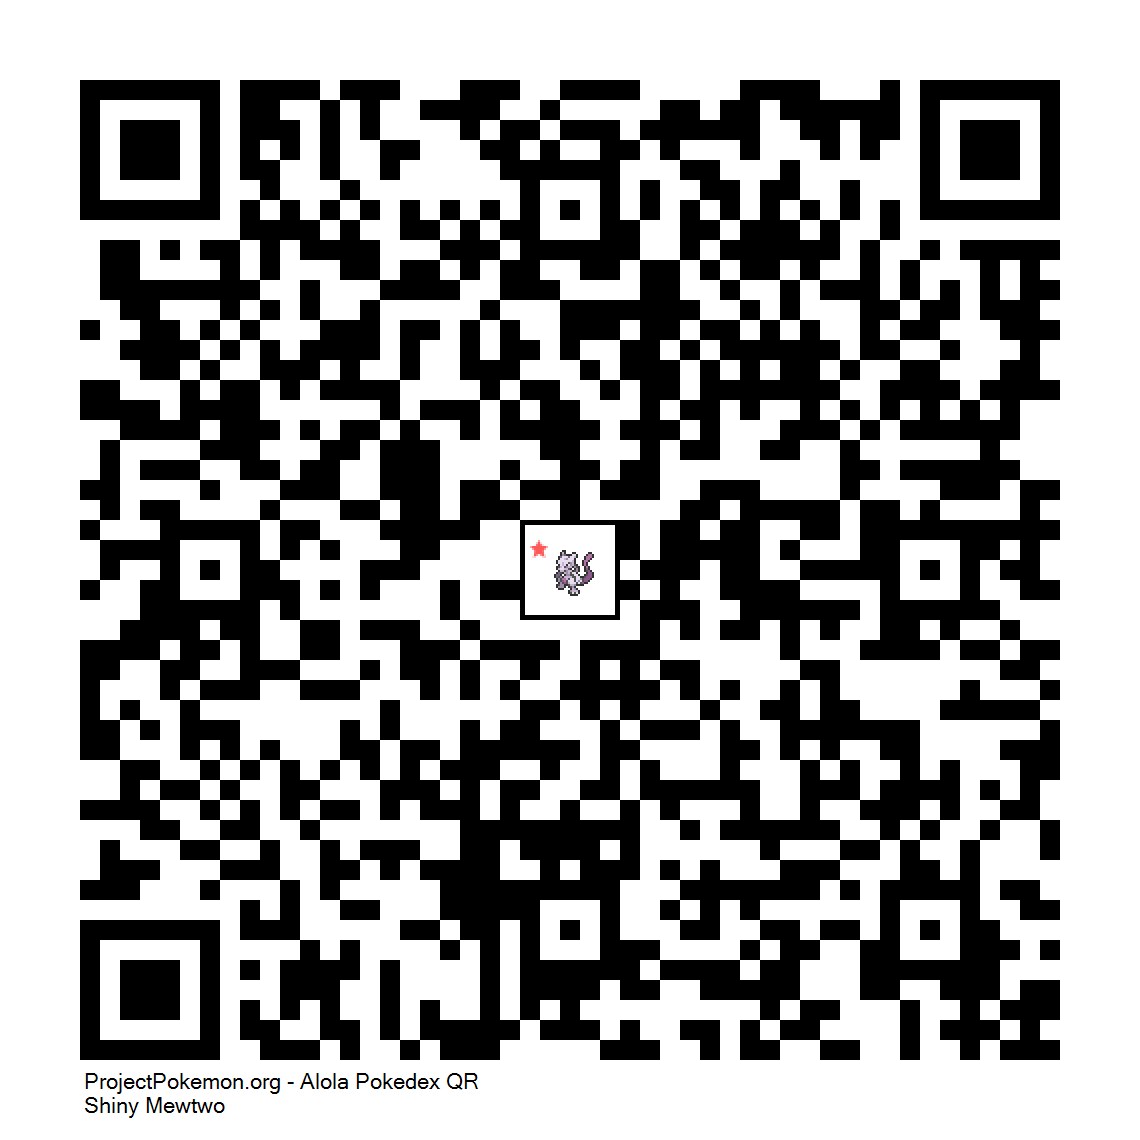 150 shiny mewtwo png qr codes for gen 7 project pokemon forums